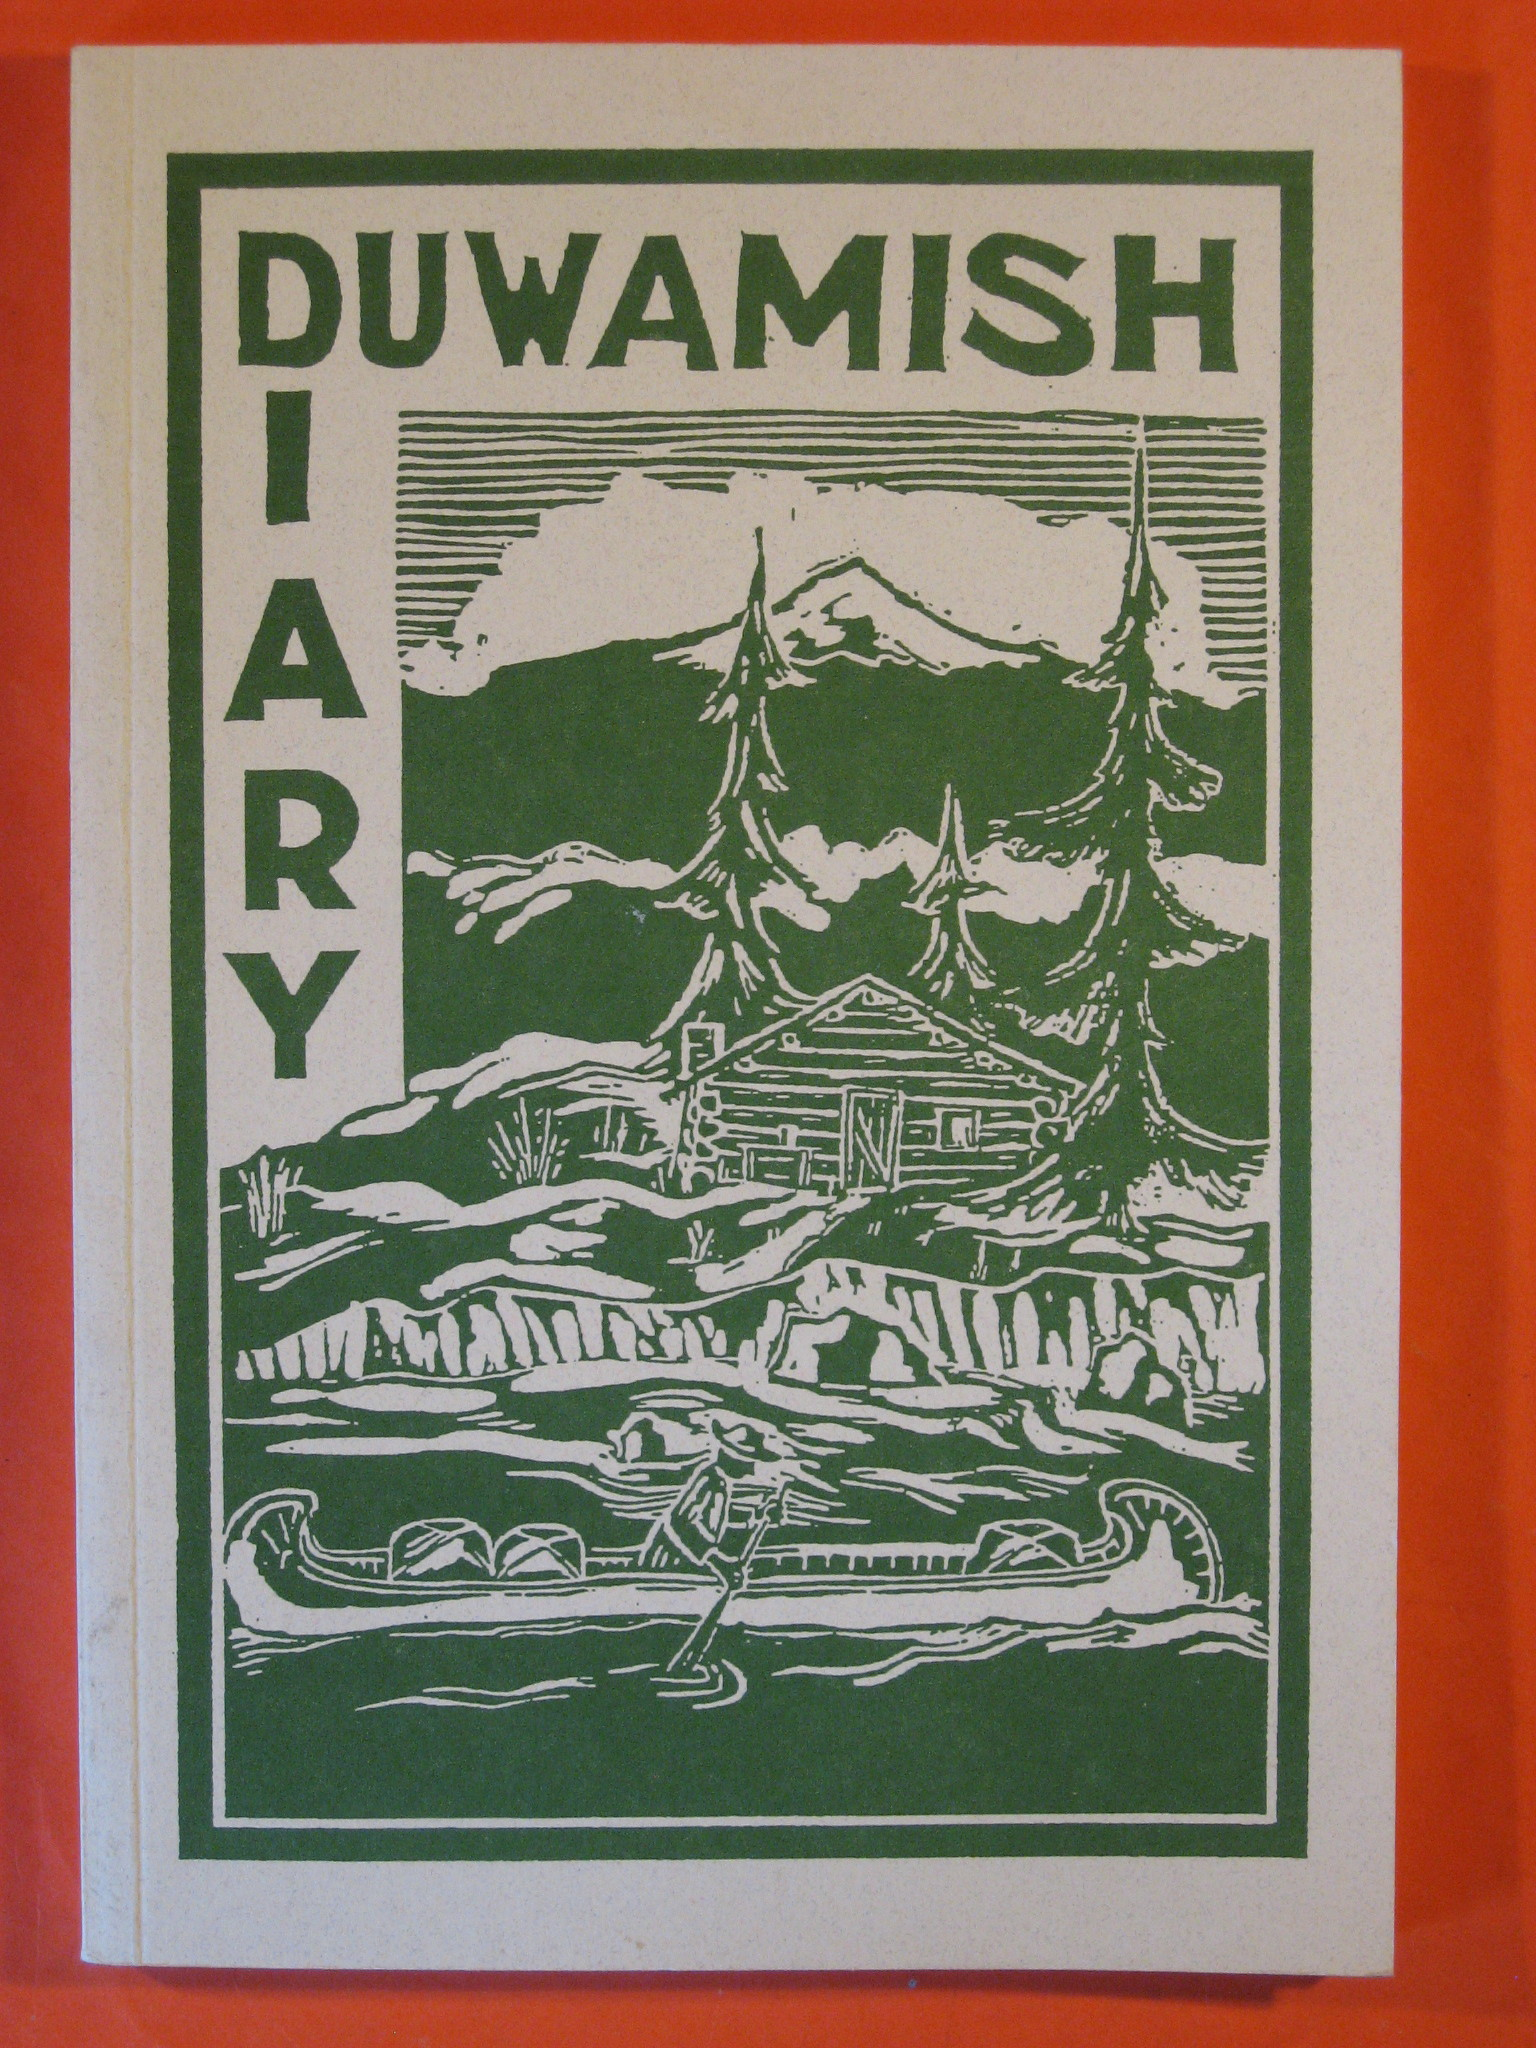 Duwamish Diary 1849 -- 1949, the